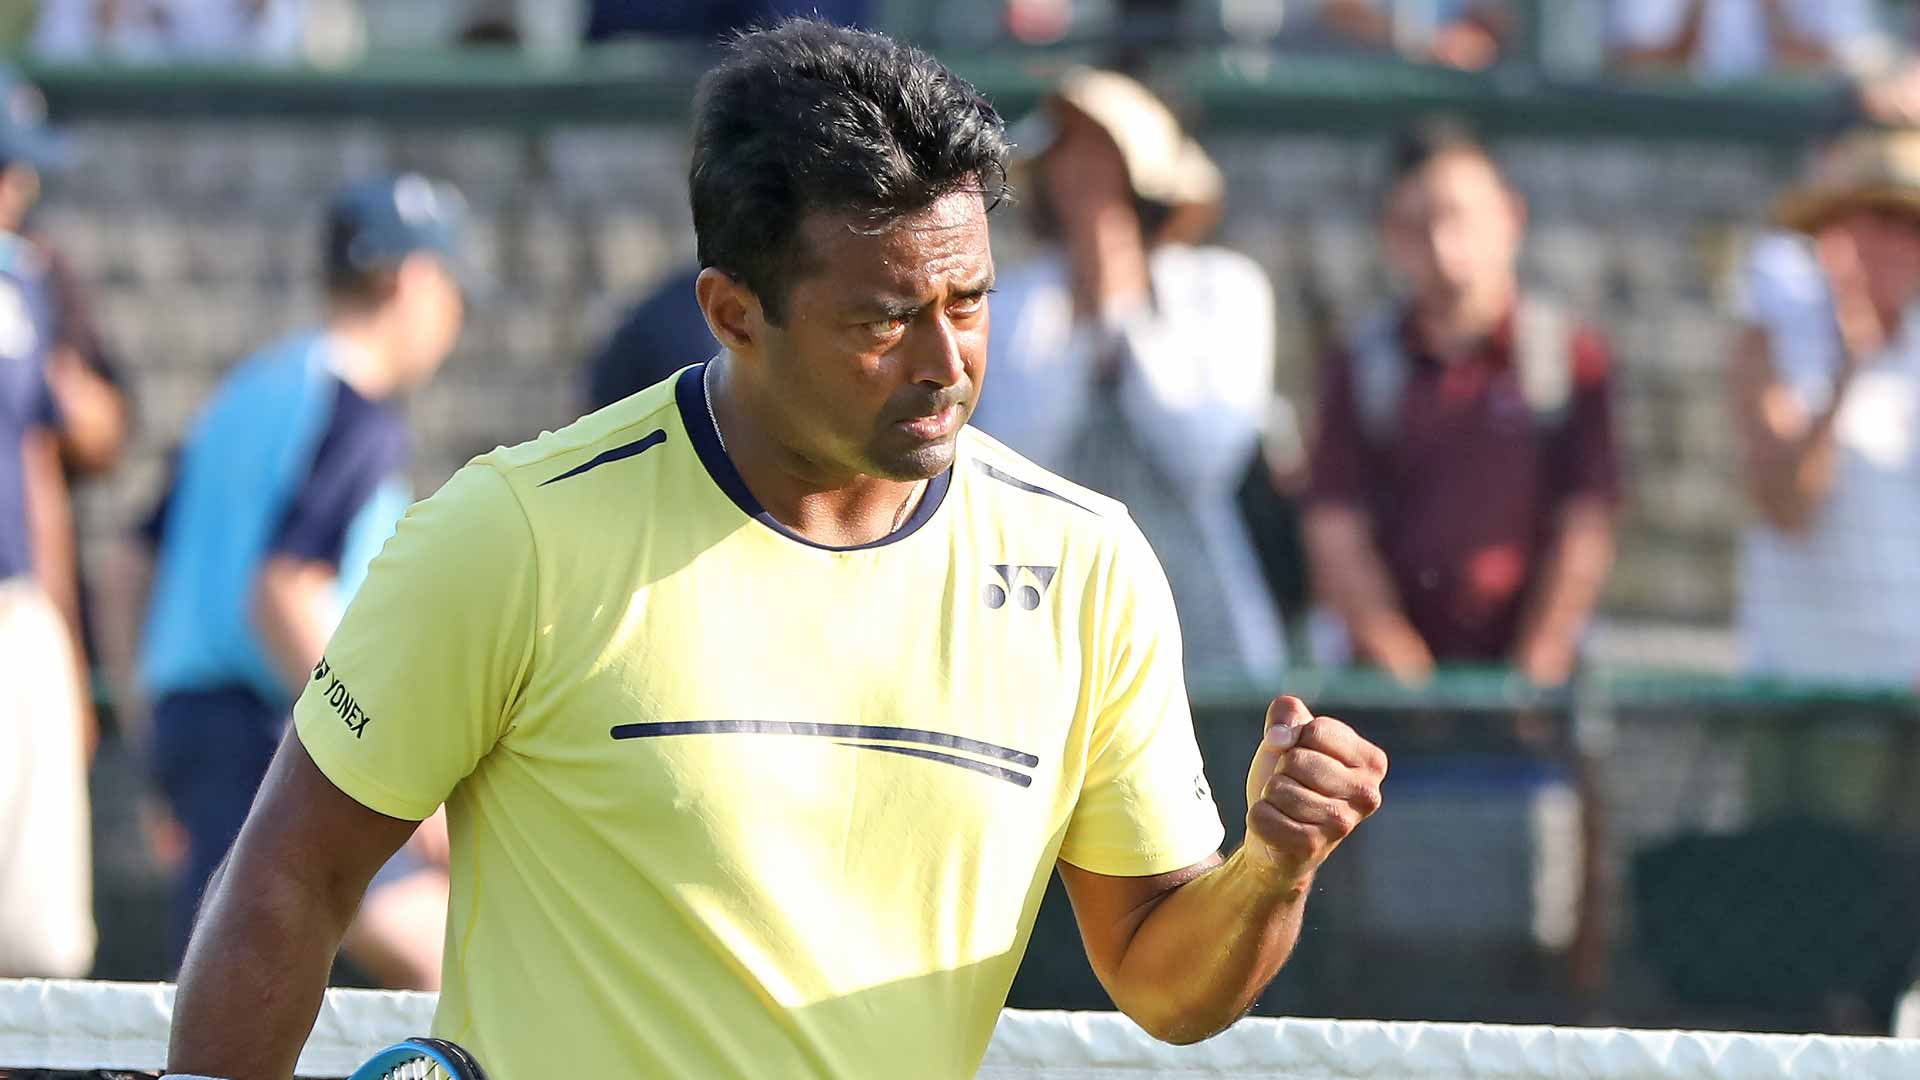 Leander Paes reacts at Newport 2019